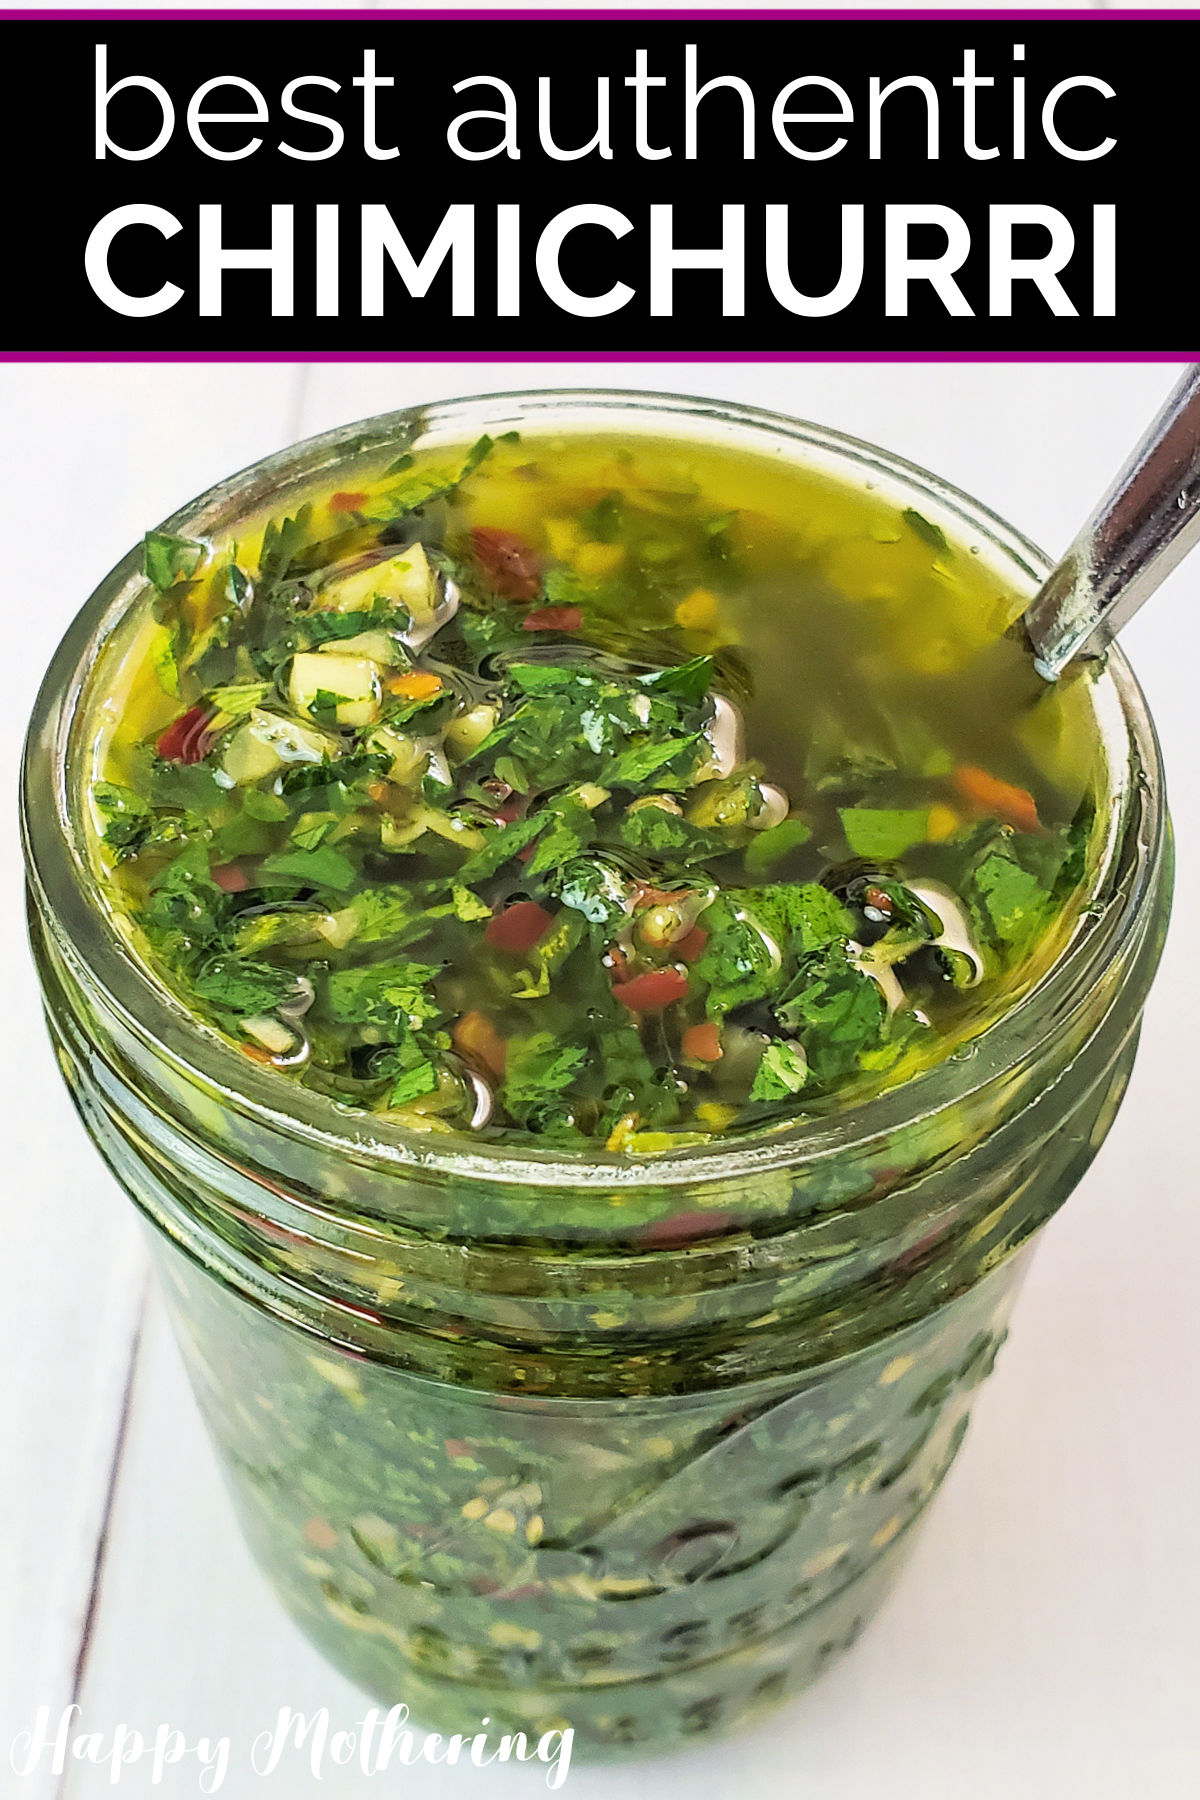 Chimichurri sauce in pint sized mason jar with spoon for serving